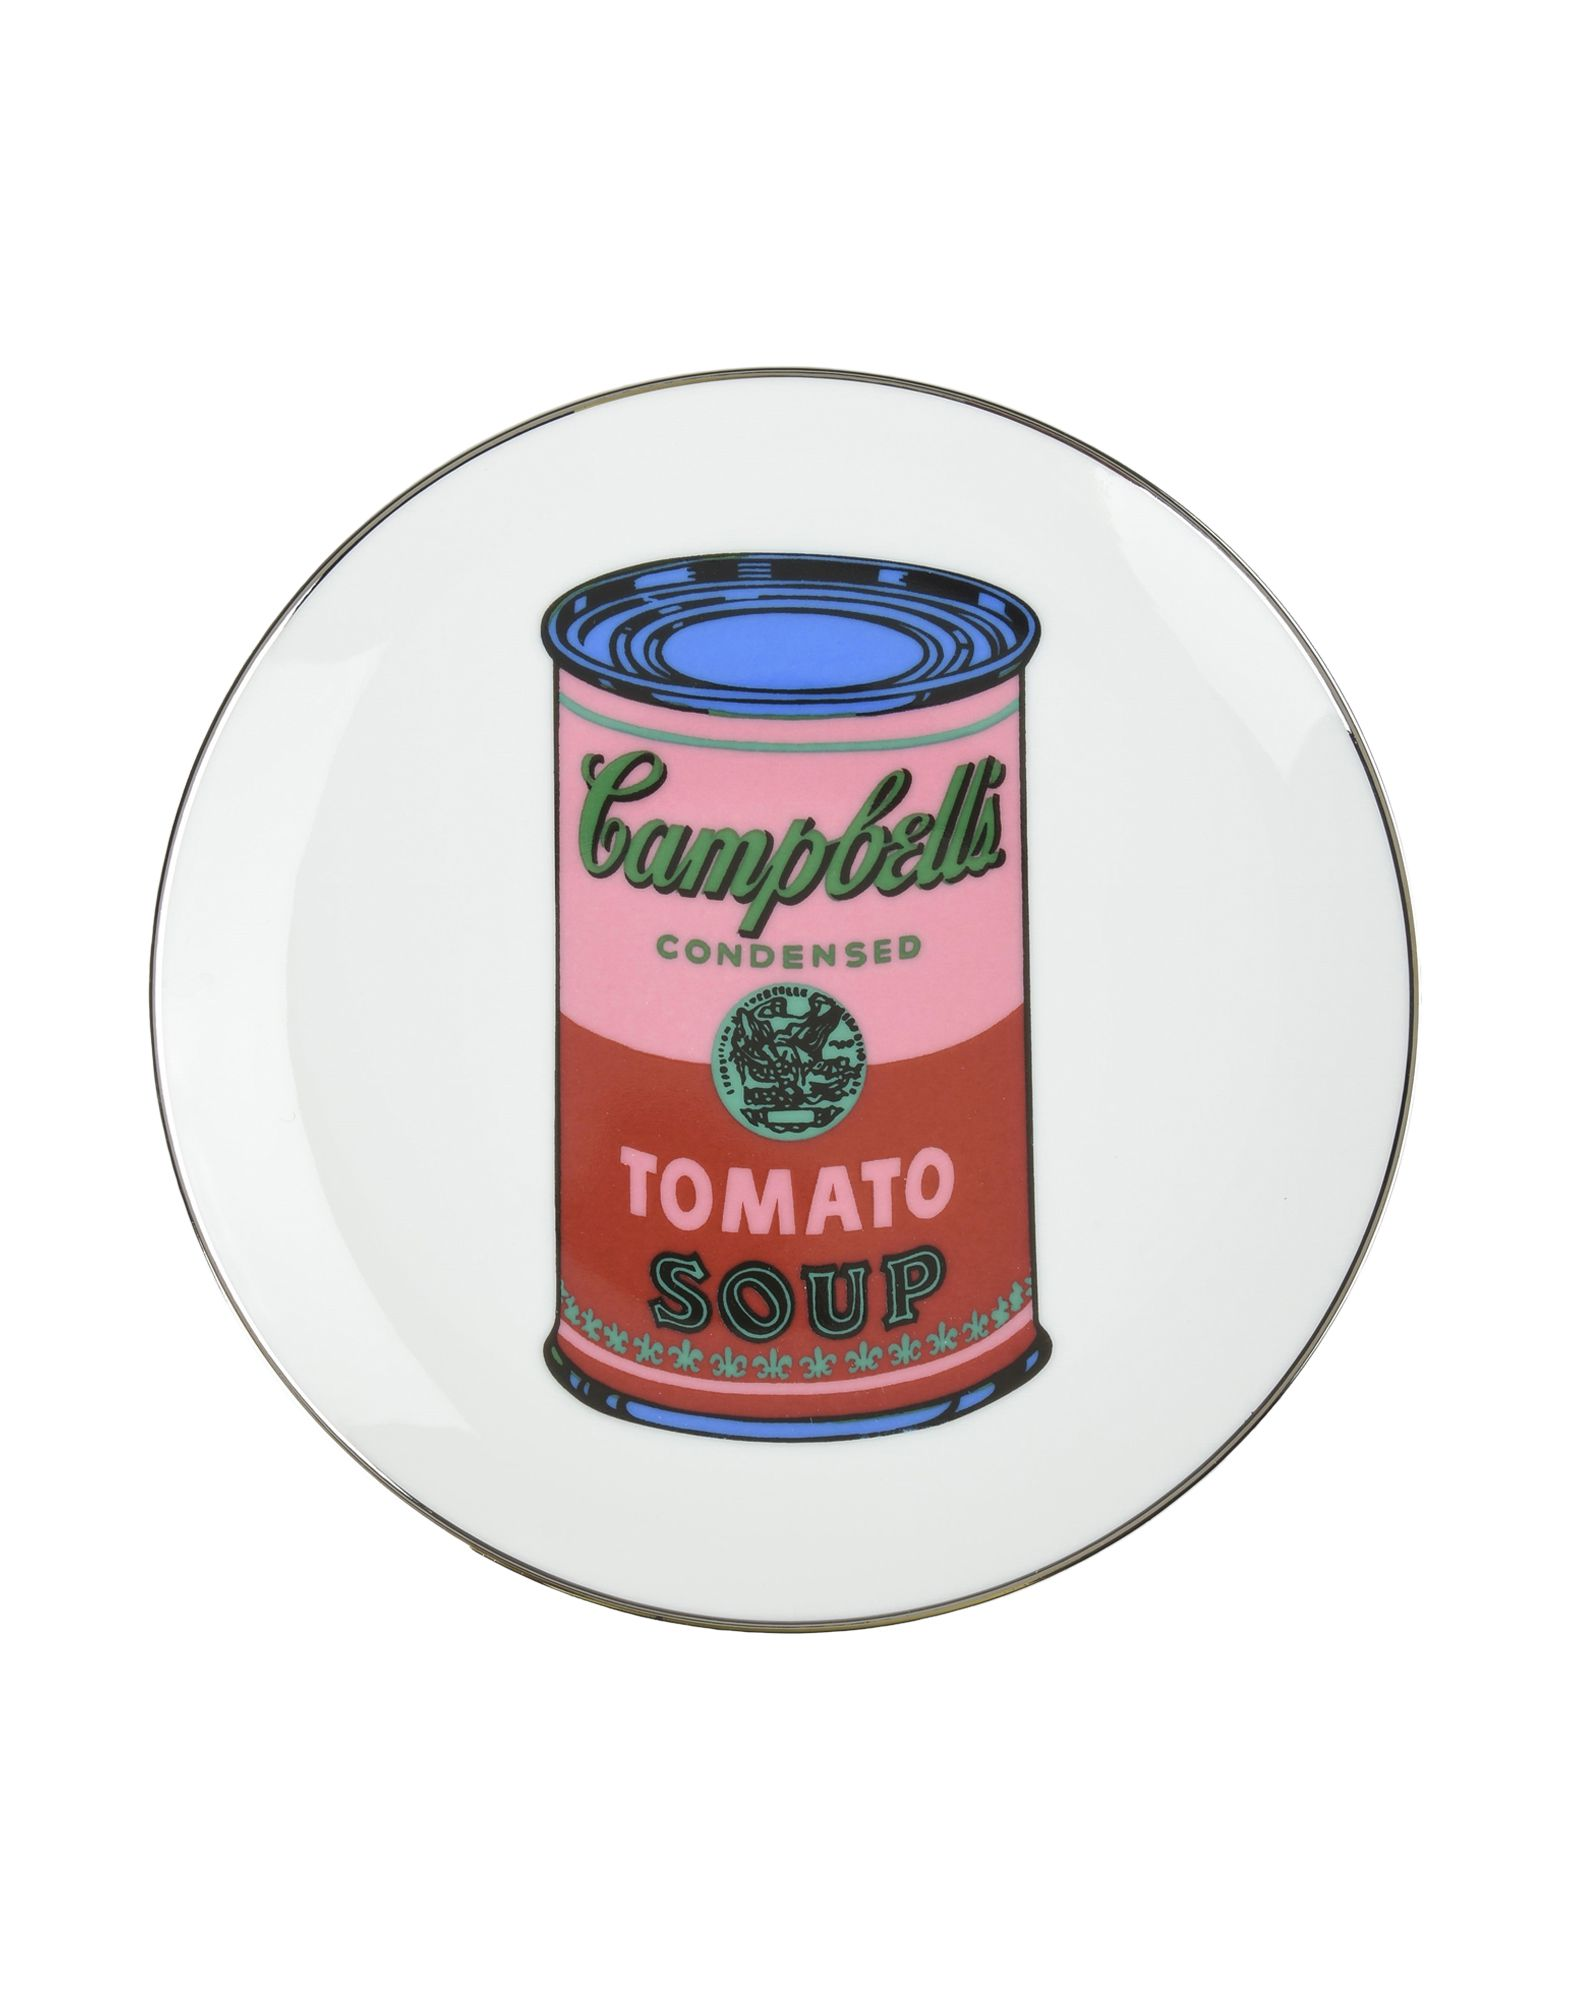 ANDY-WARHOL-CAMPBELLSOUP